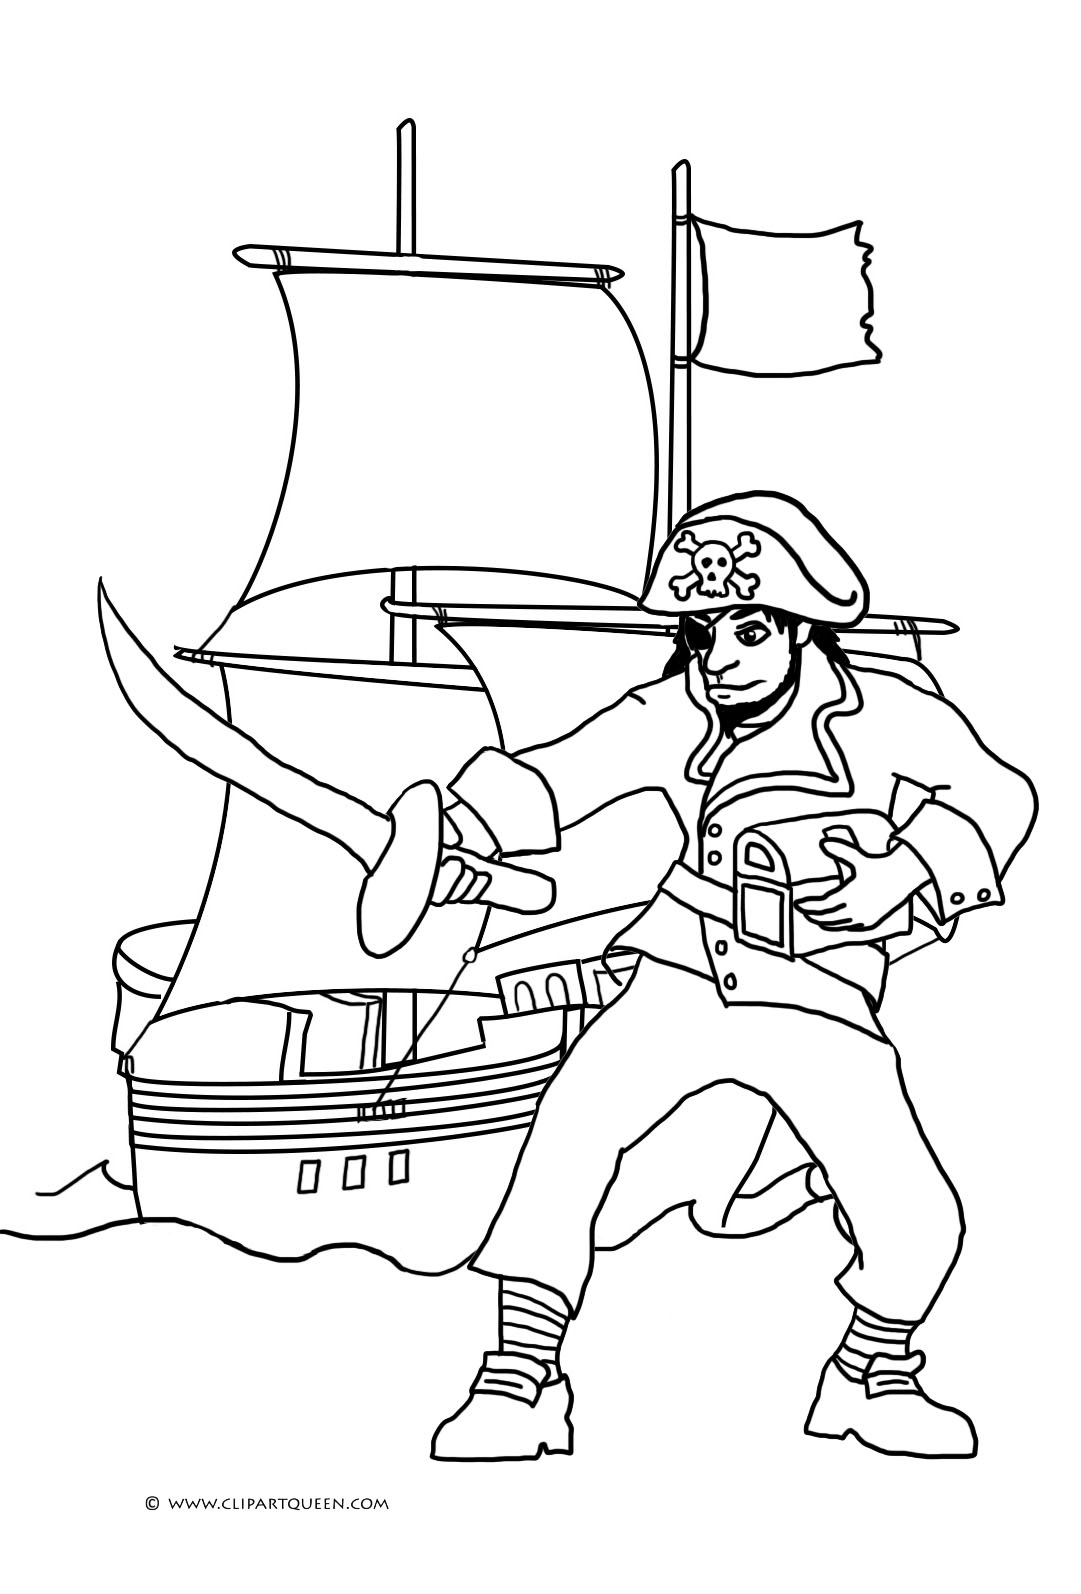 pirates coloring pages pirate coloring pages pages coloring pirates